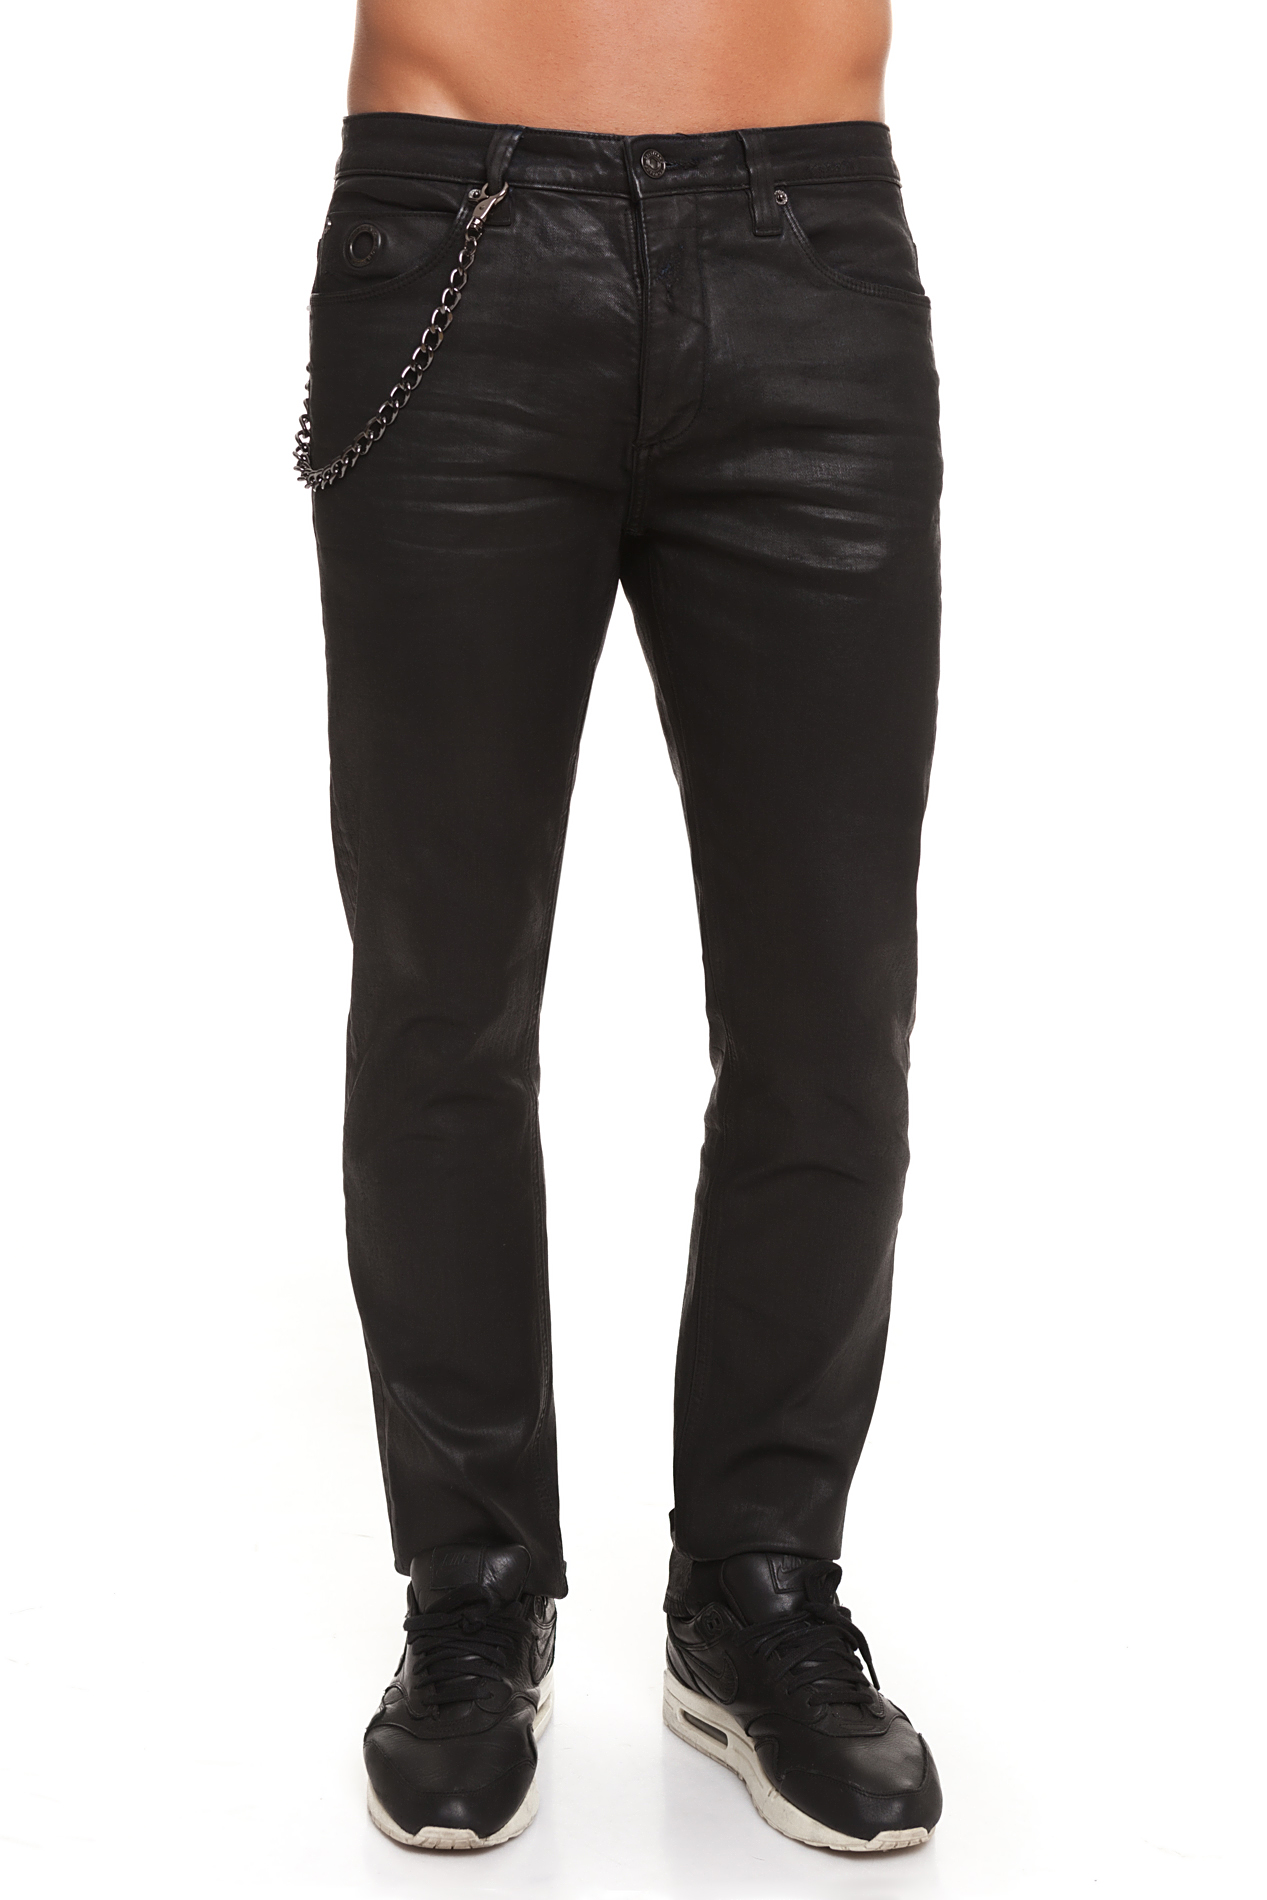 CR7 Jeans For Men Color Black Casual Jeans Casual Slim Thin Straight Curly With Pockets CRD017A